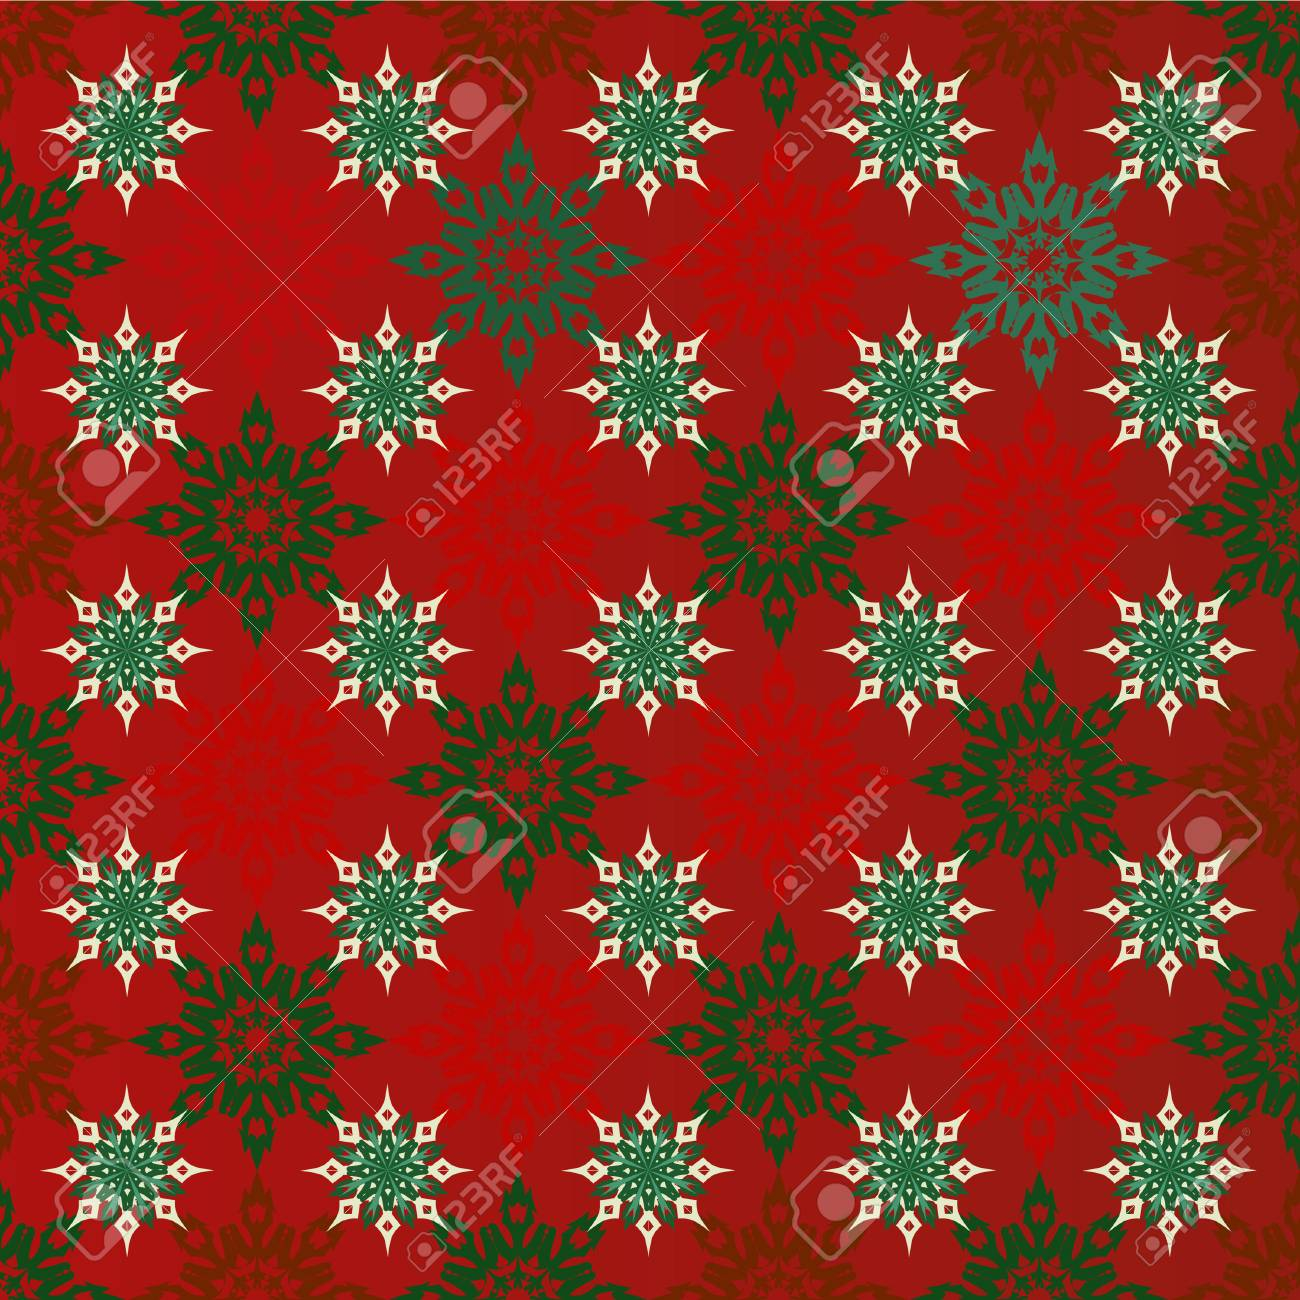 christmas seamless red background with red and green snowflakes wallpaper